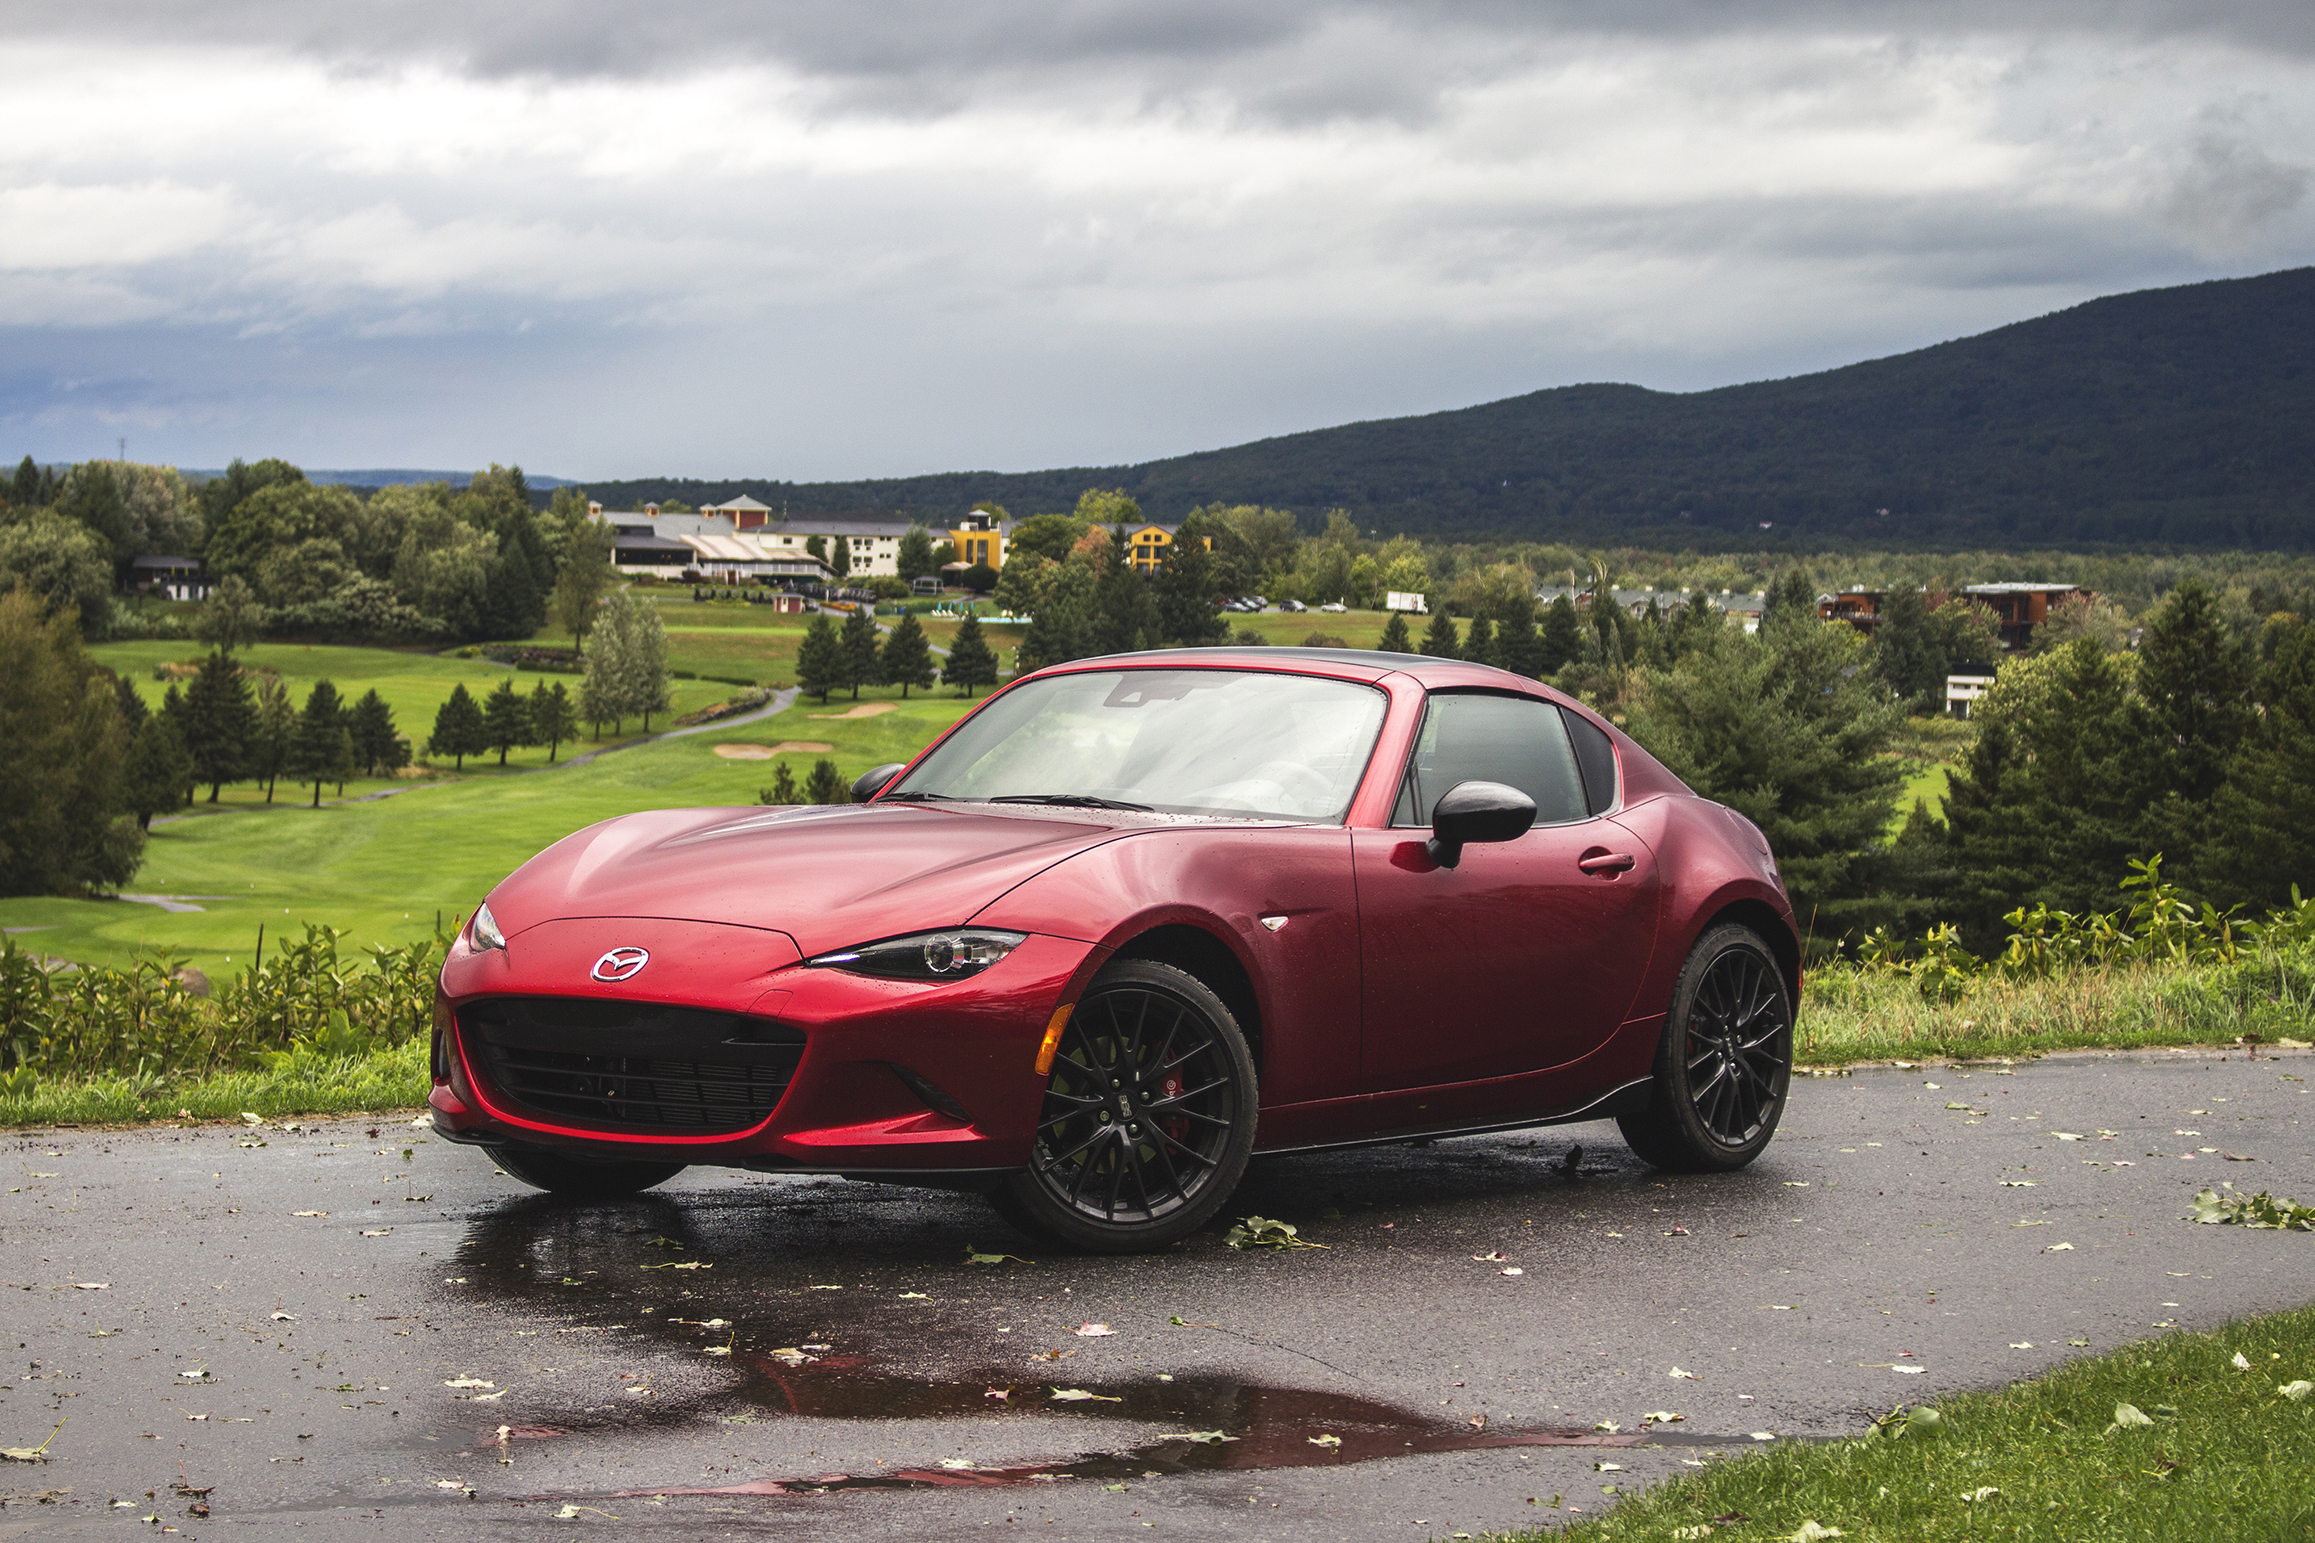 2019 Mazda MX-5: Bringing Power To The People